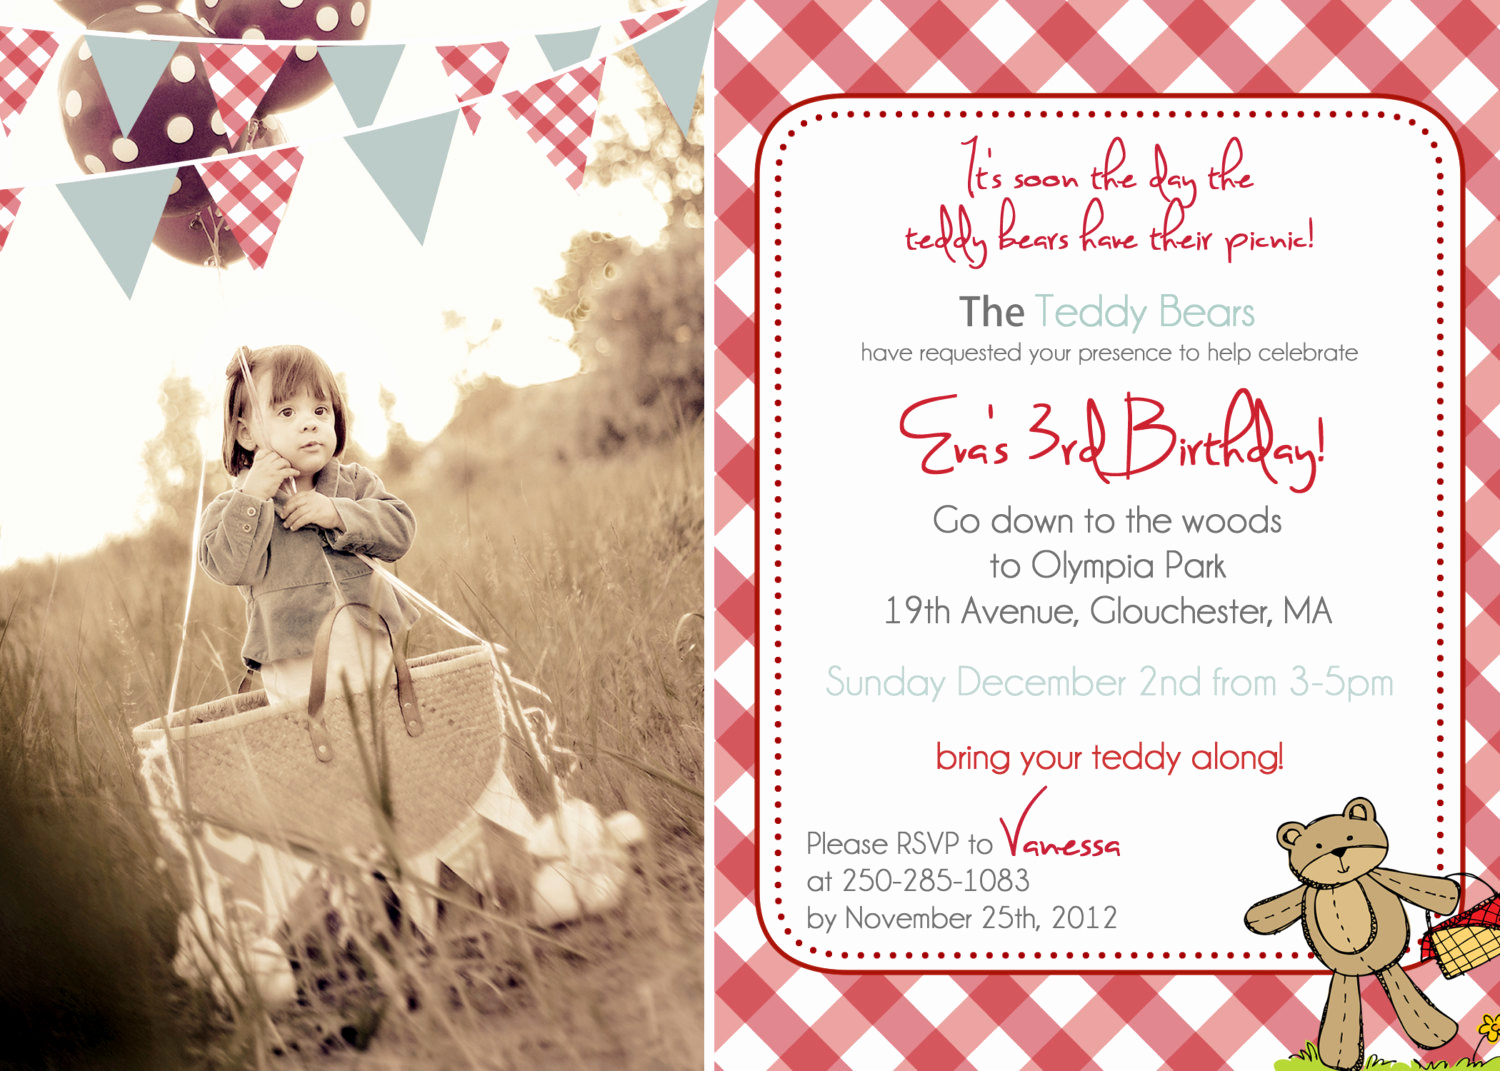 Teddy Bear Picnic Invitation Luxury Teddy Bear Picnic Birthday Invitation You Print by